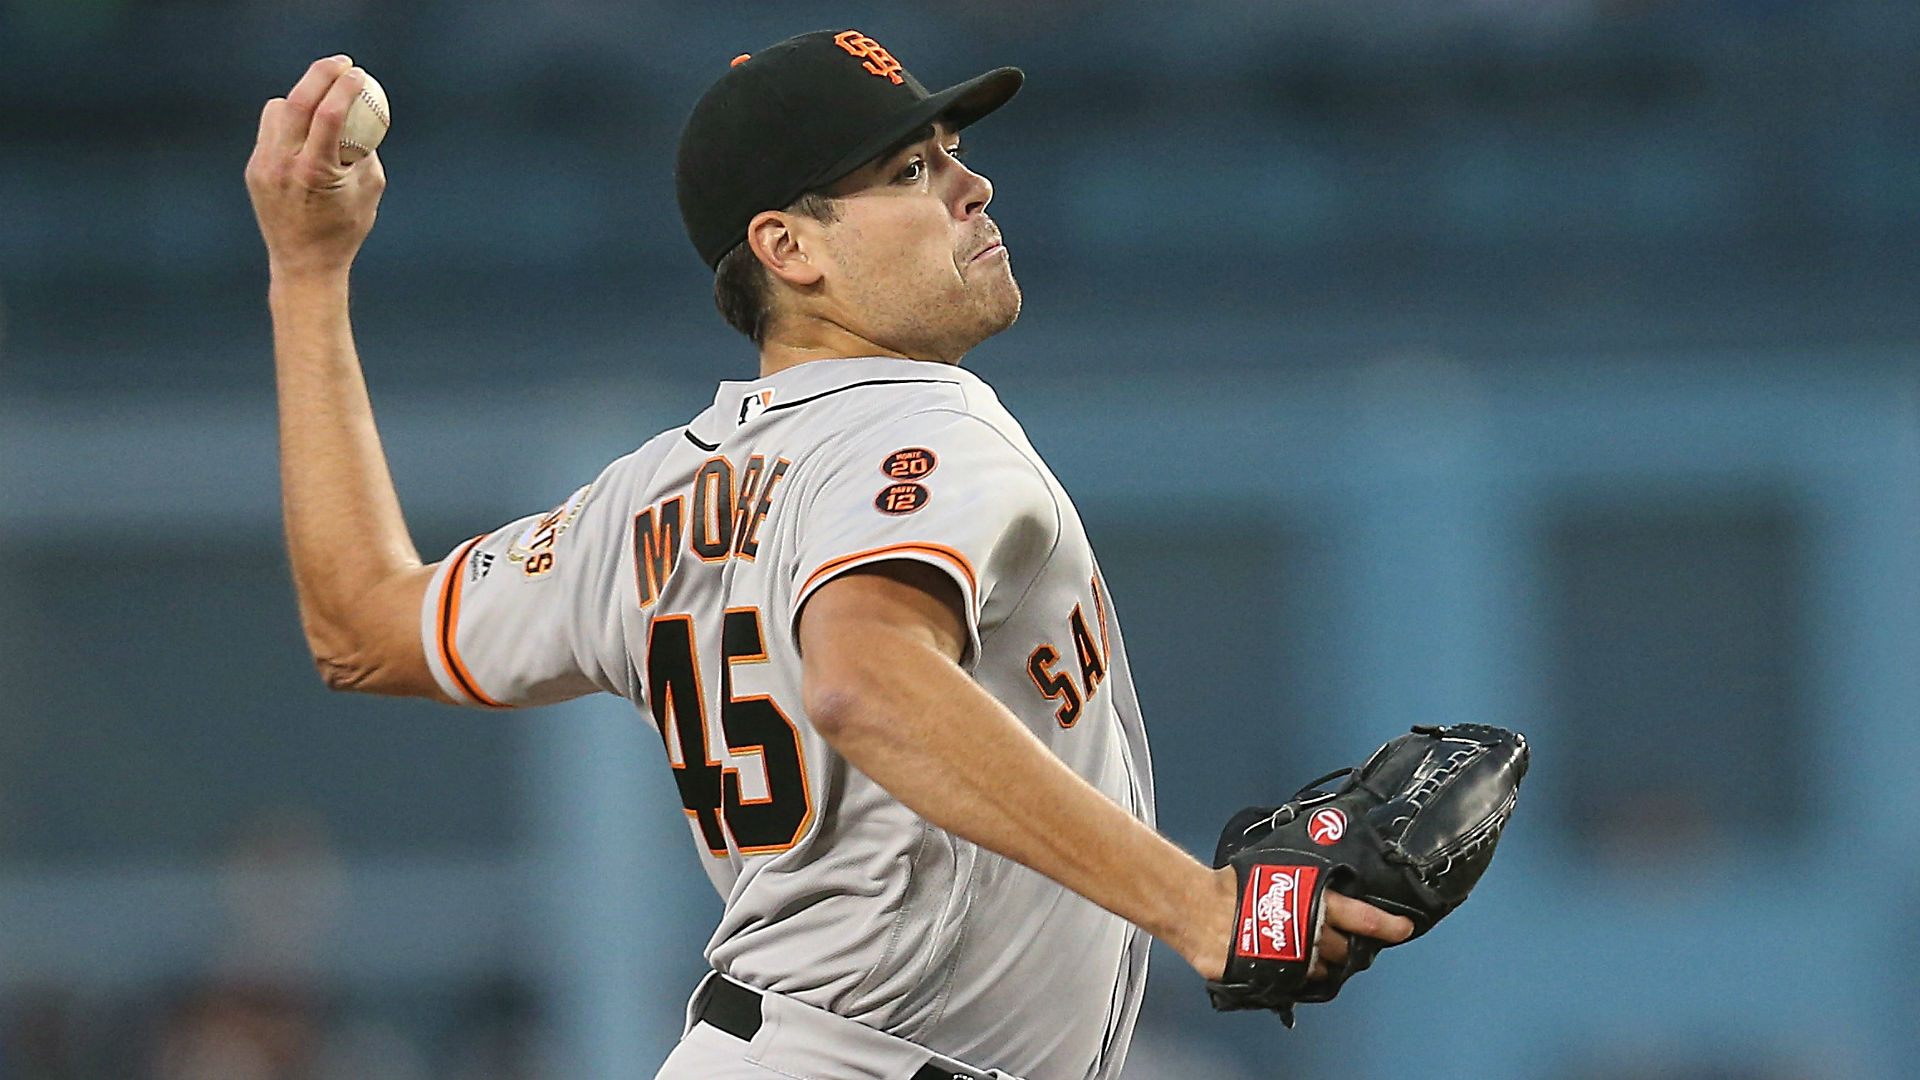 Giants' Moore just misses no-hitter vs. Dodgers